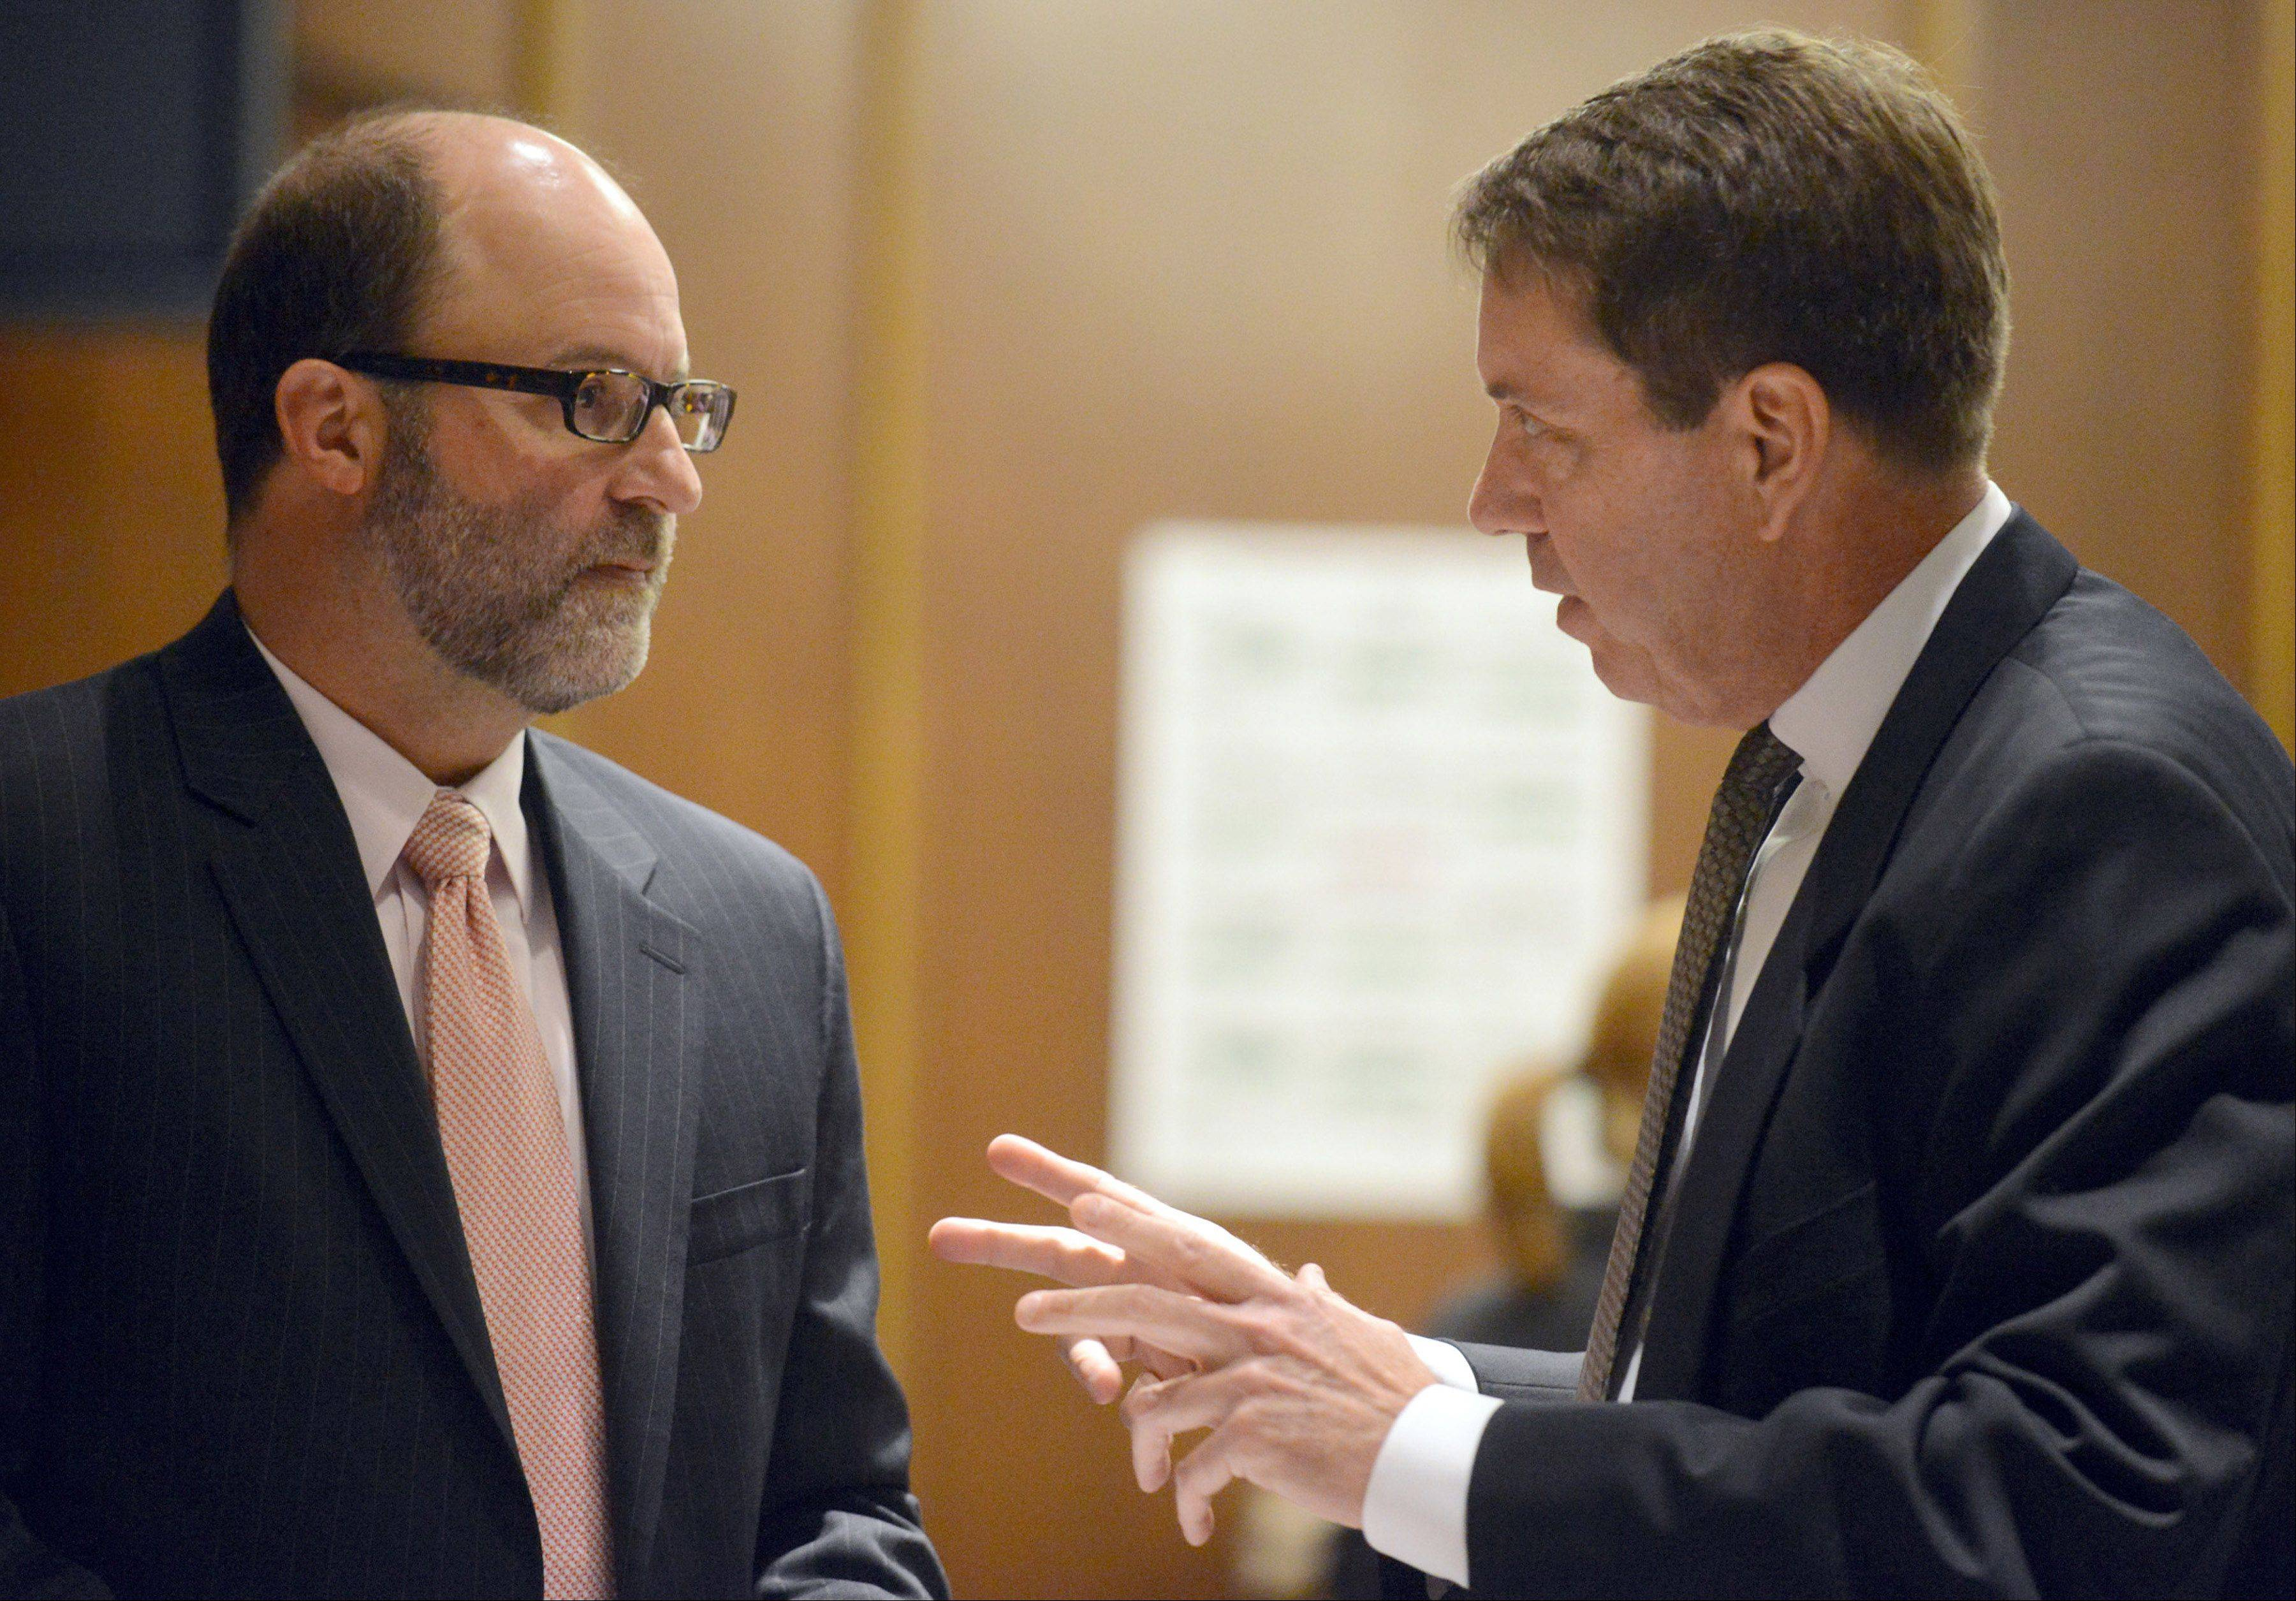 Assistant state's attorneys Steve Scheller, left, and Jeffrey Pavletic discuss their closing statements in the trial of James Ealy, 48, of Lake Villa on Friday in Waukegan.